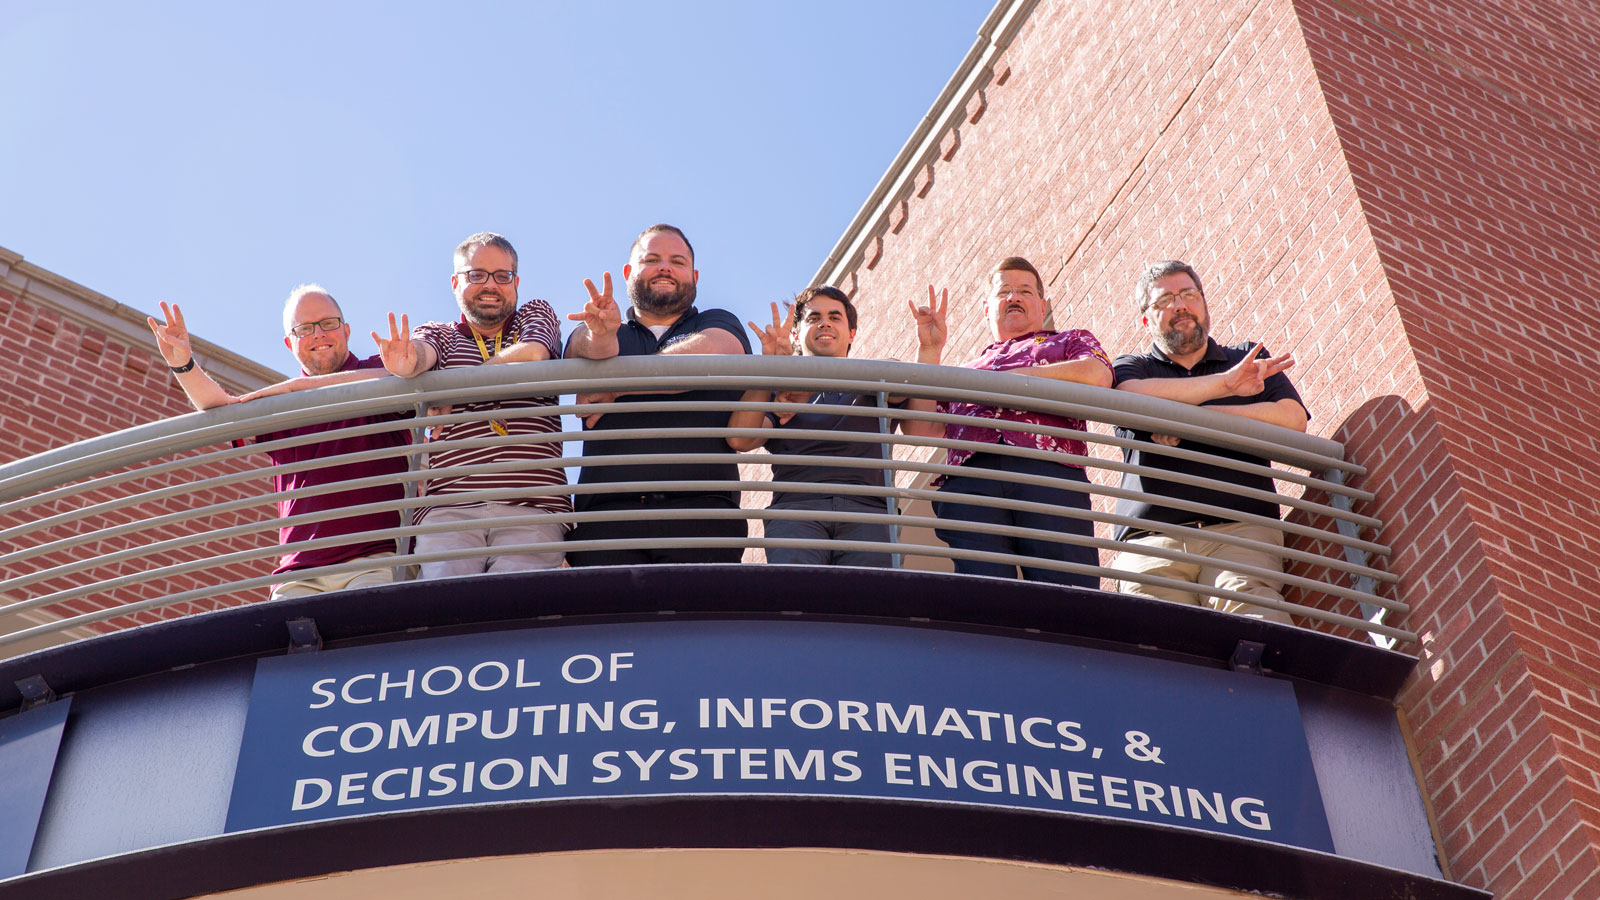 School of Computing, Informatics, and Decision Systems Engineering information technology team poses on a balcony.